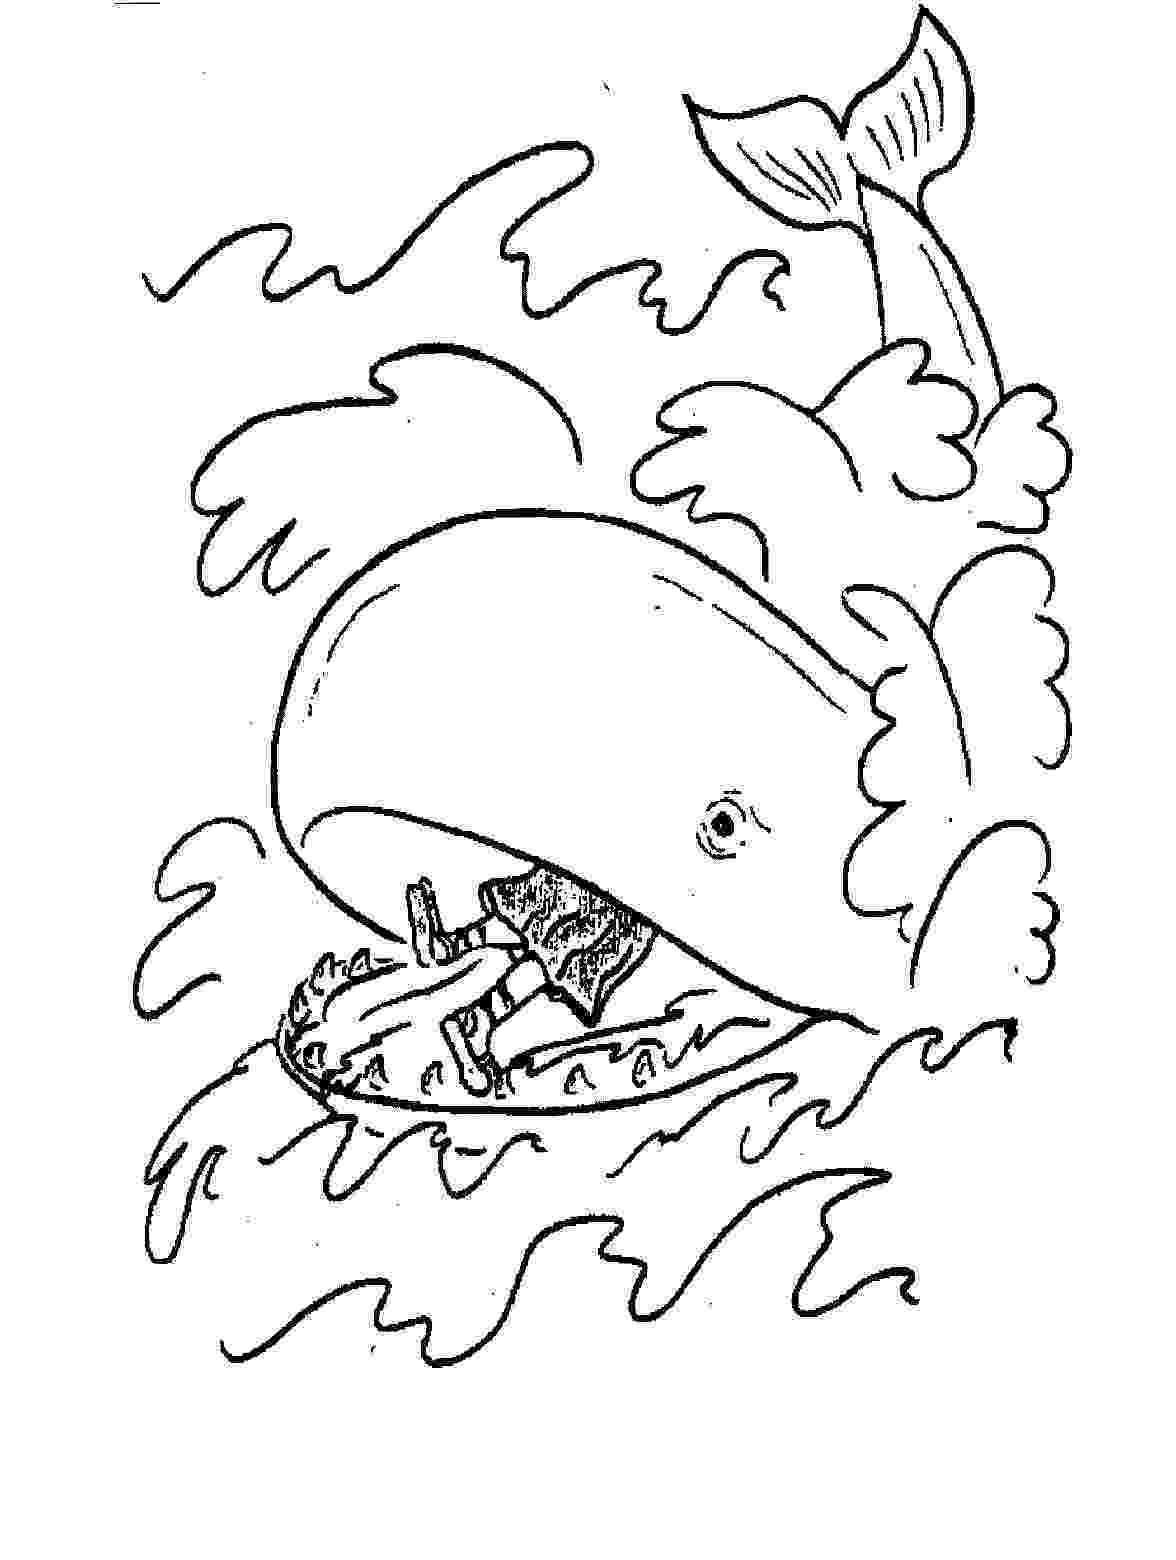 jonah and the whale coloring page free printable jonah and the whale coloring pages for kids and page coloring whale jonah the